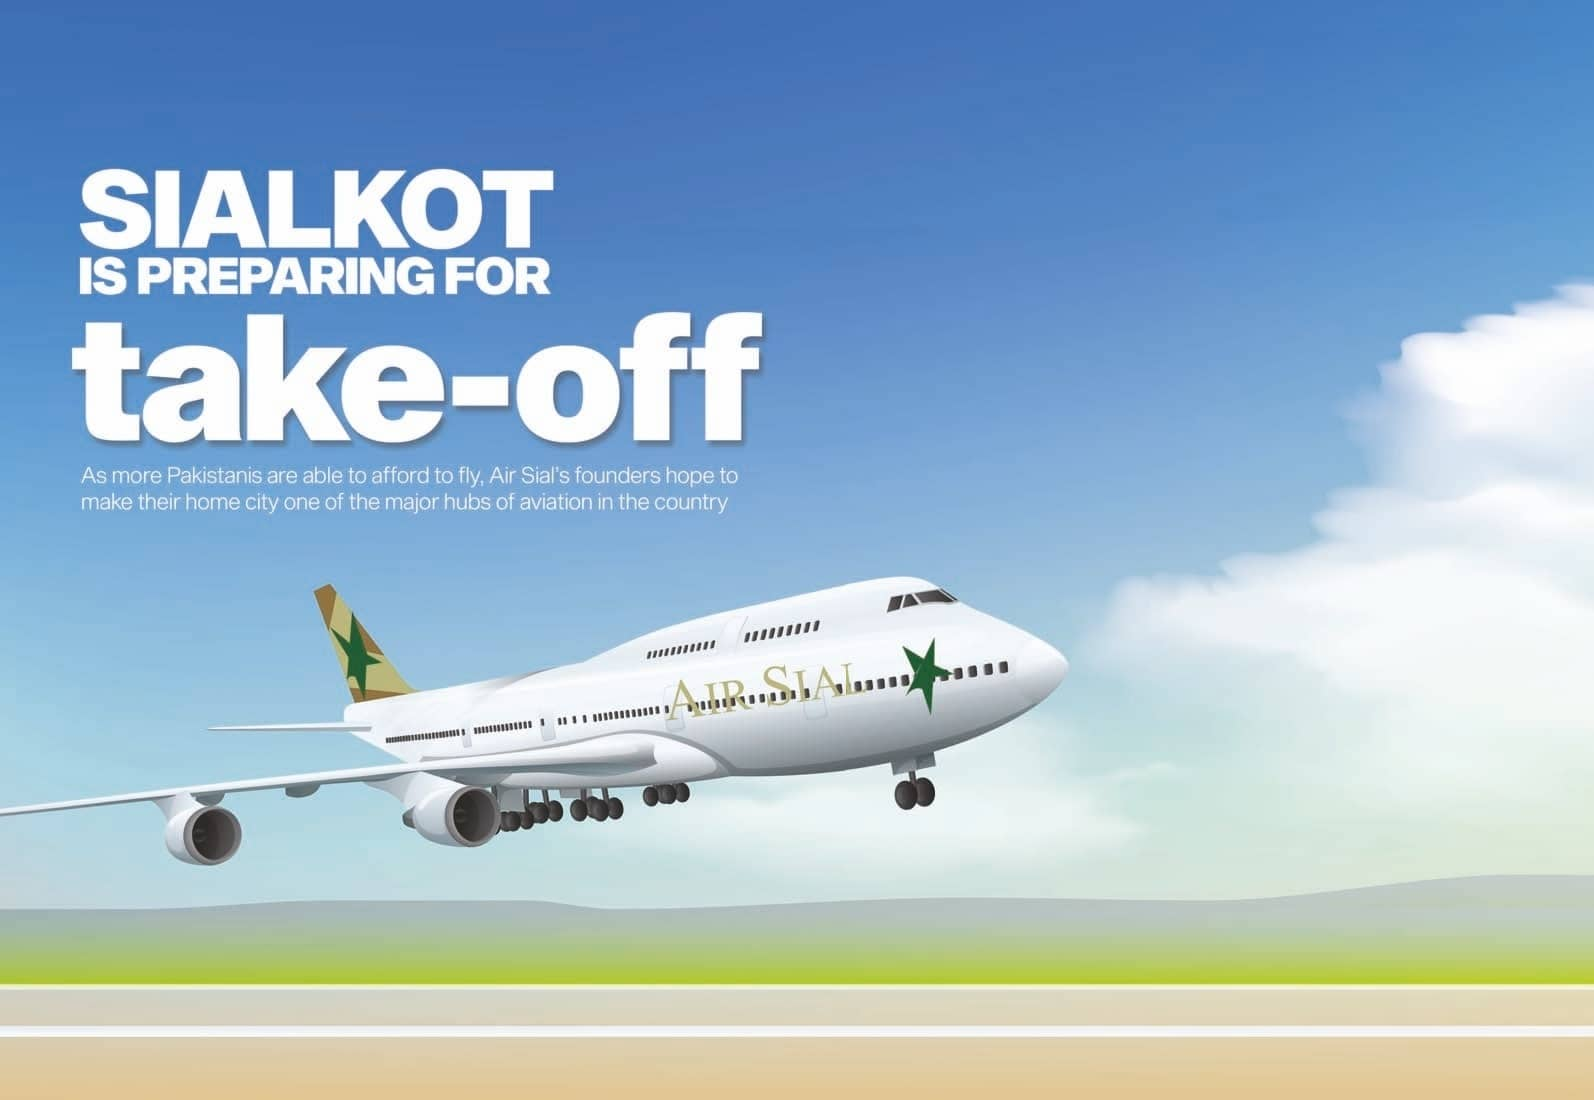 SIALKOT IS PREPARING FOR take-off